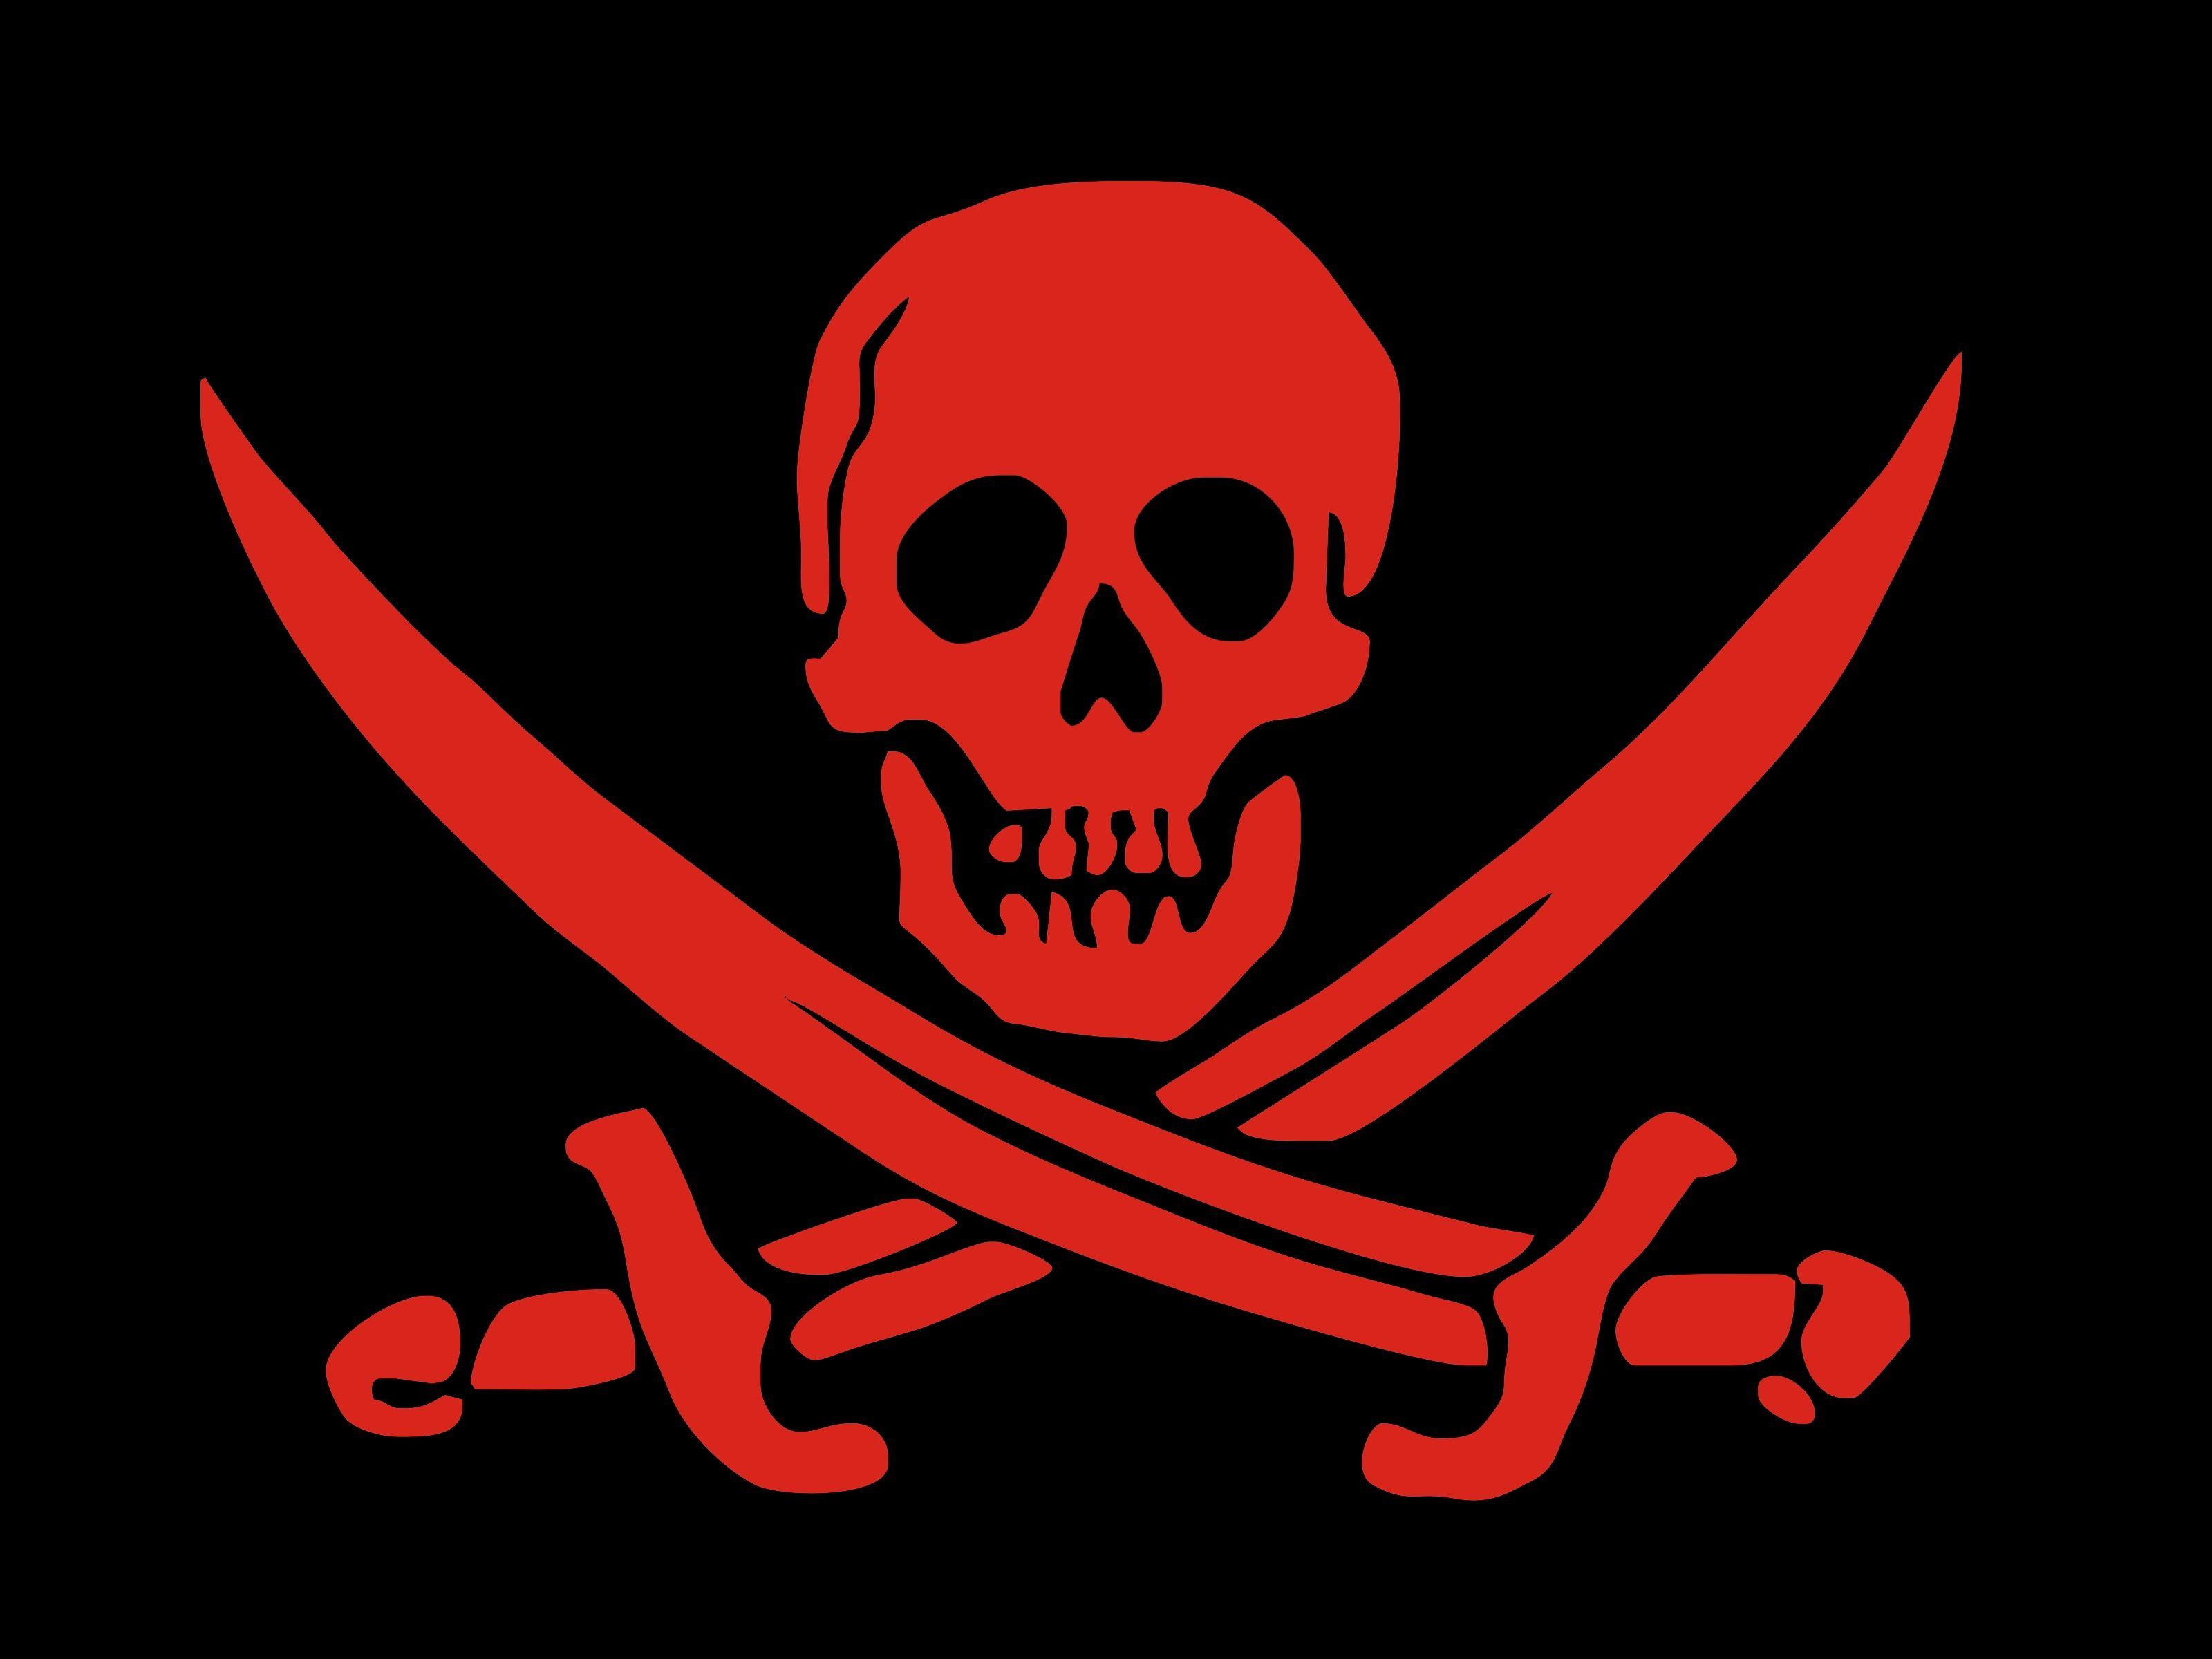 Free Download Jolly Roger Wallpapers 3200x2400 For Your Desktop